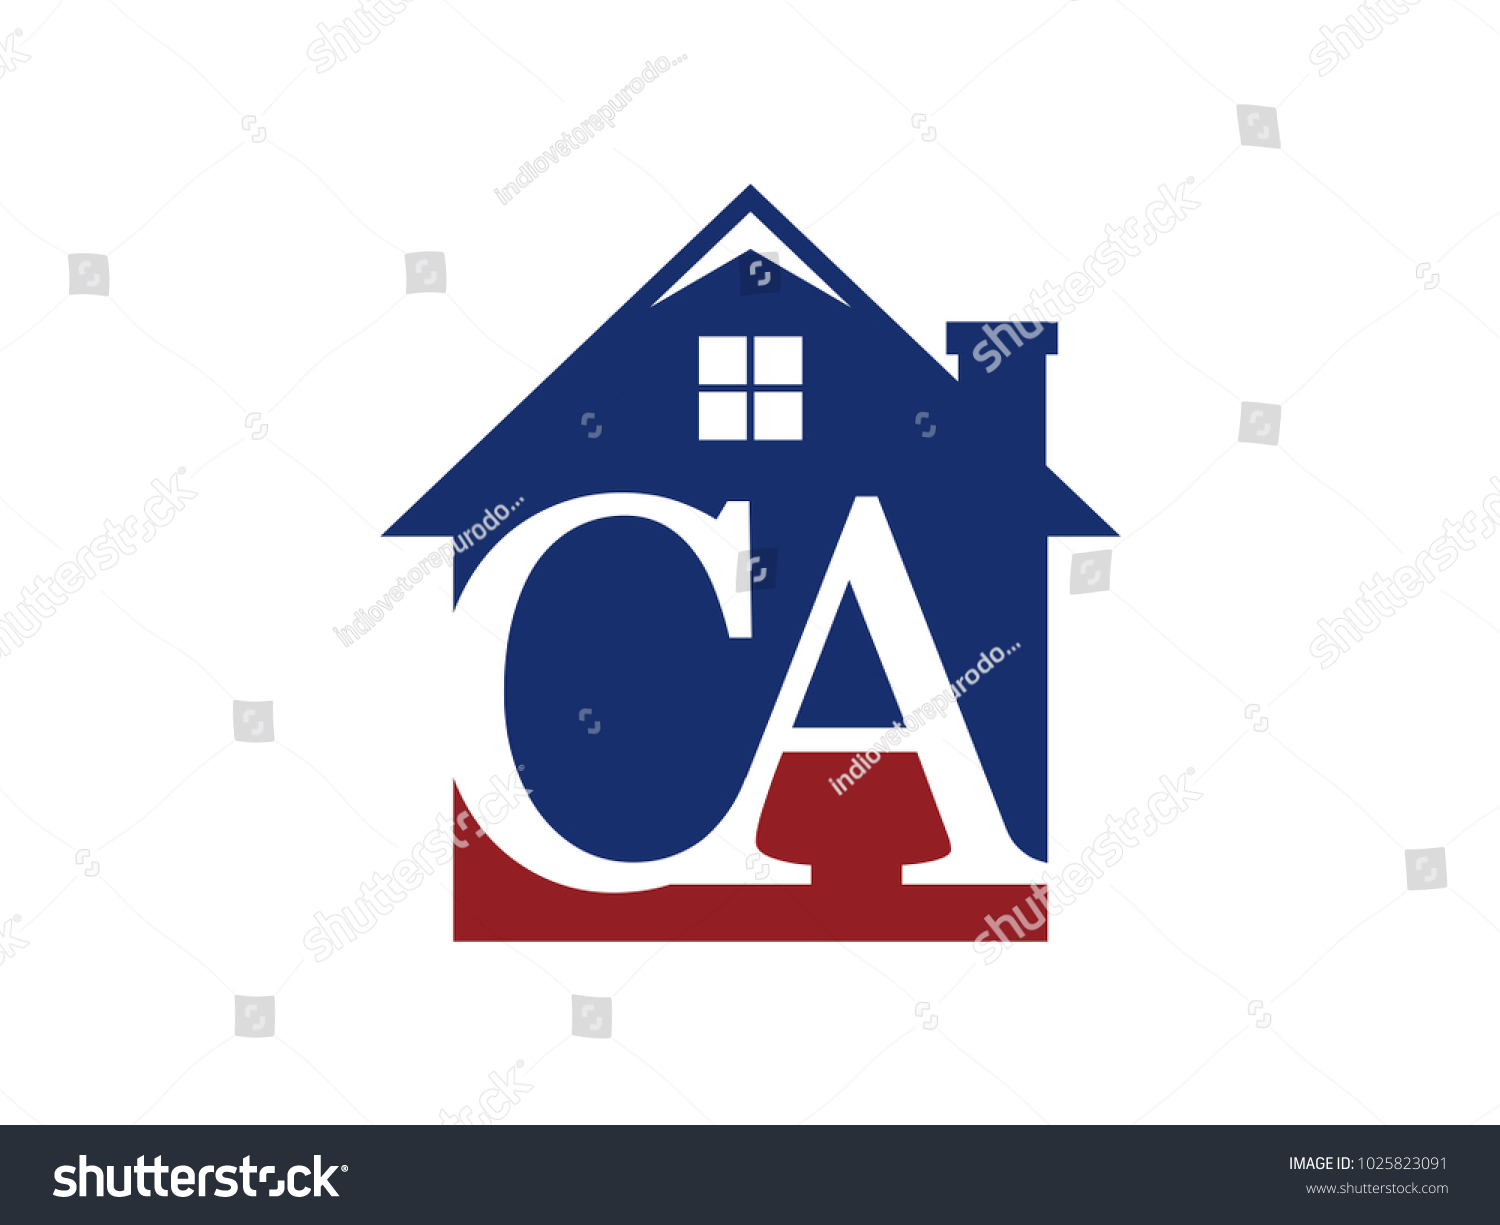 Logo house building initial letter ca stock vector 1025823091 logo house building with initial letter ca biocorpaavc